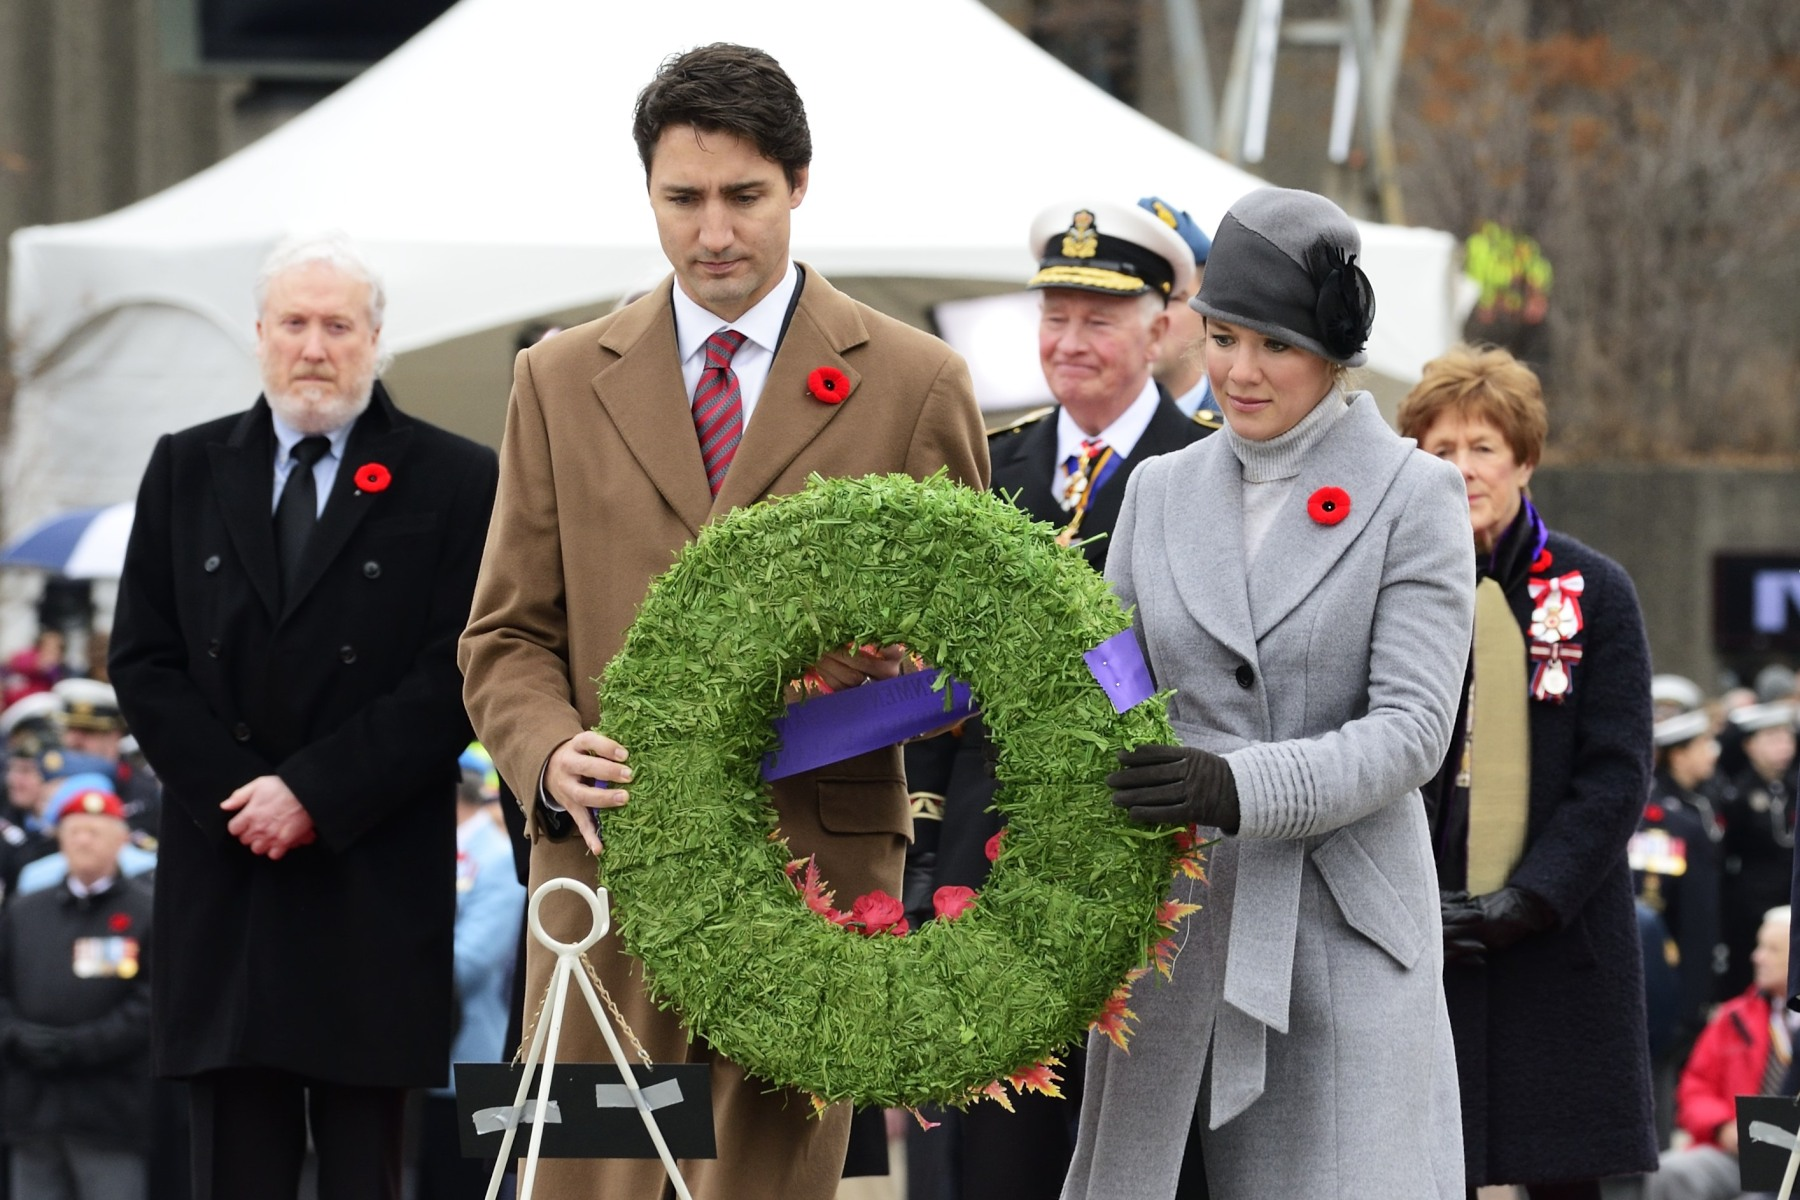 Prime Minister Trudeau and his spouse Mrs. Sophie Grégoire-Trudeau laid a wreath on behalf of the government of Canada.